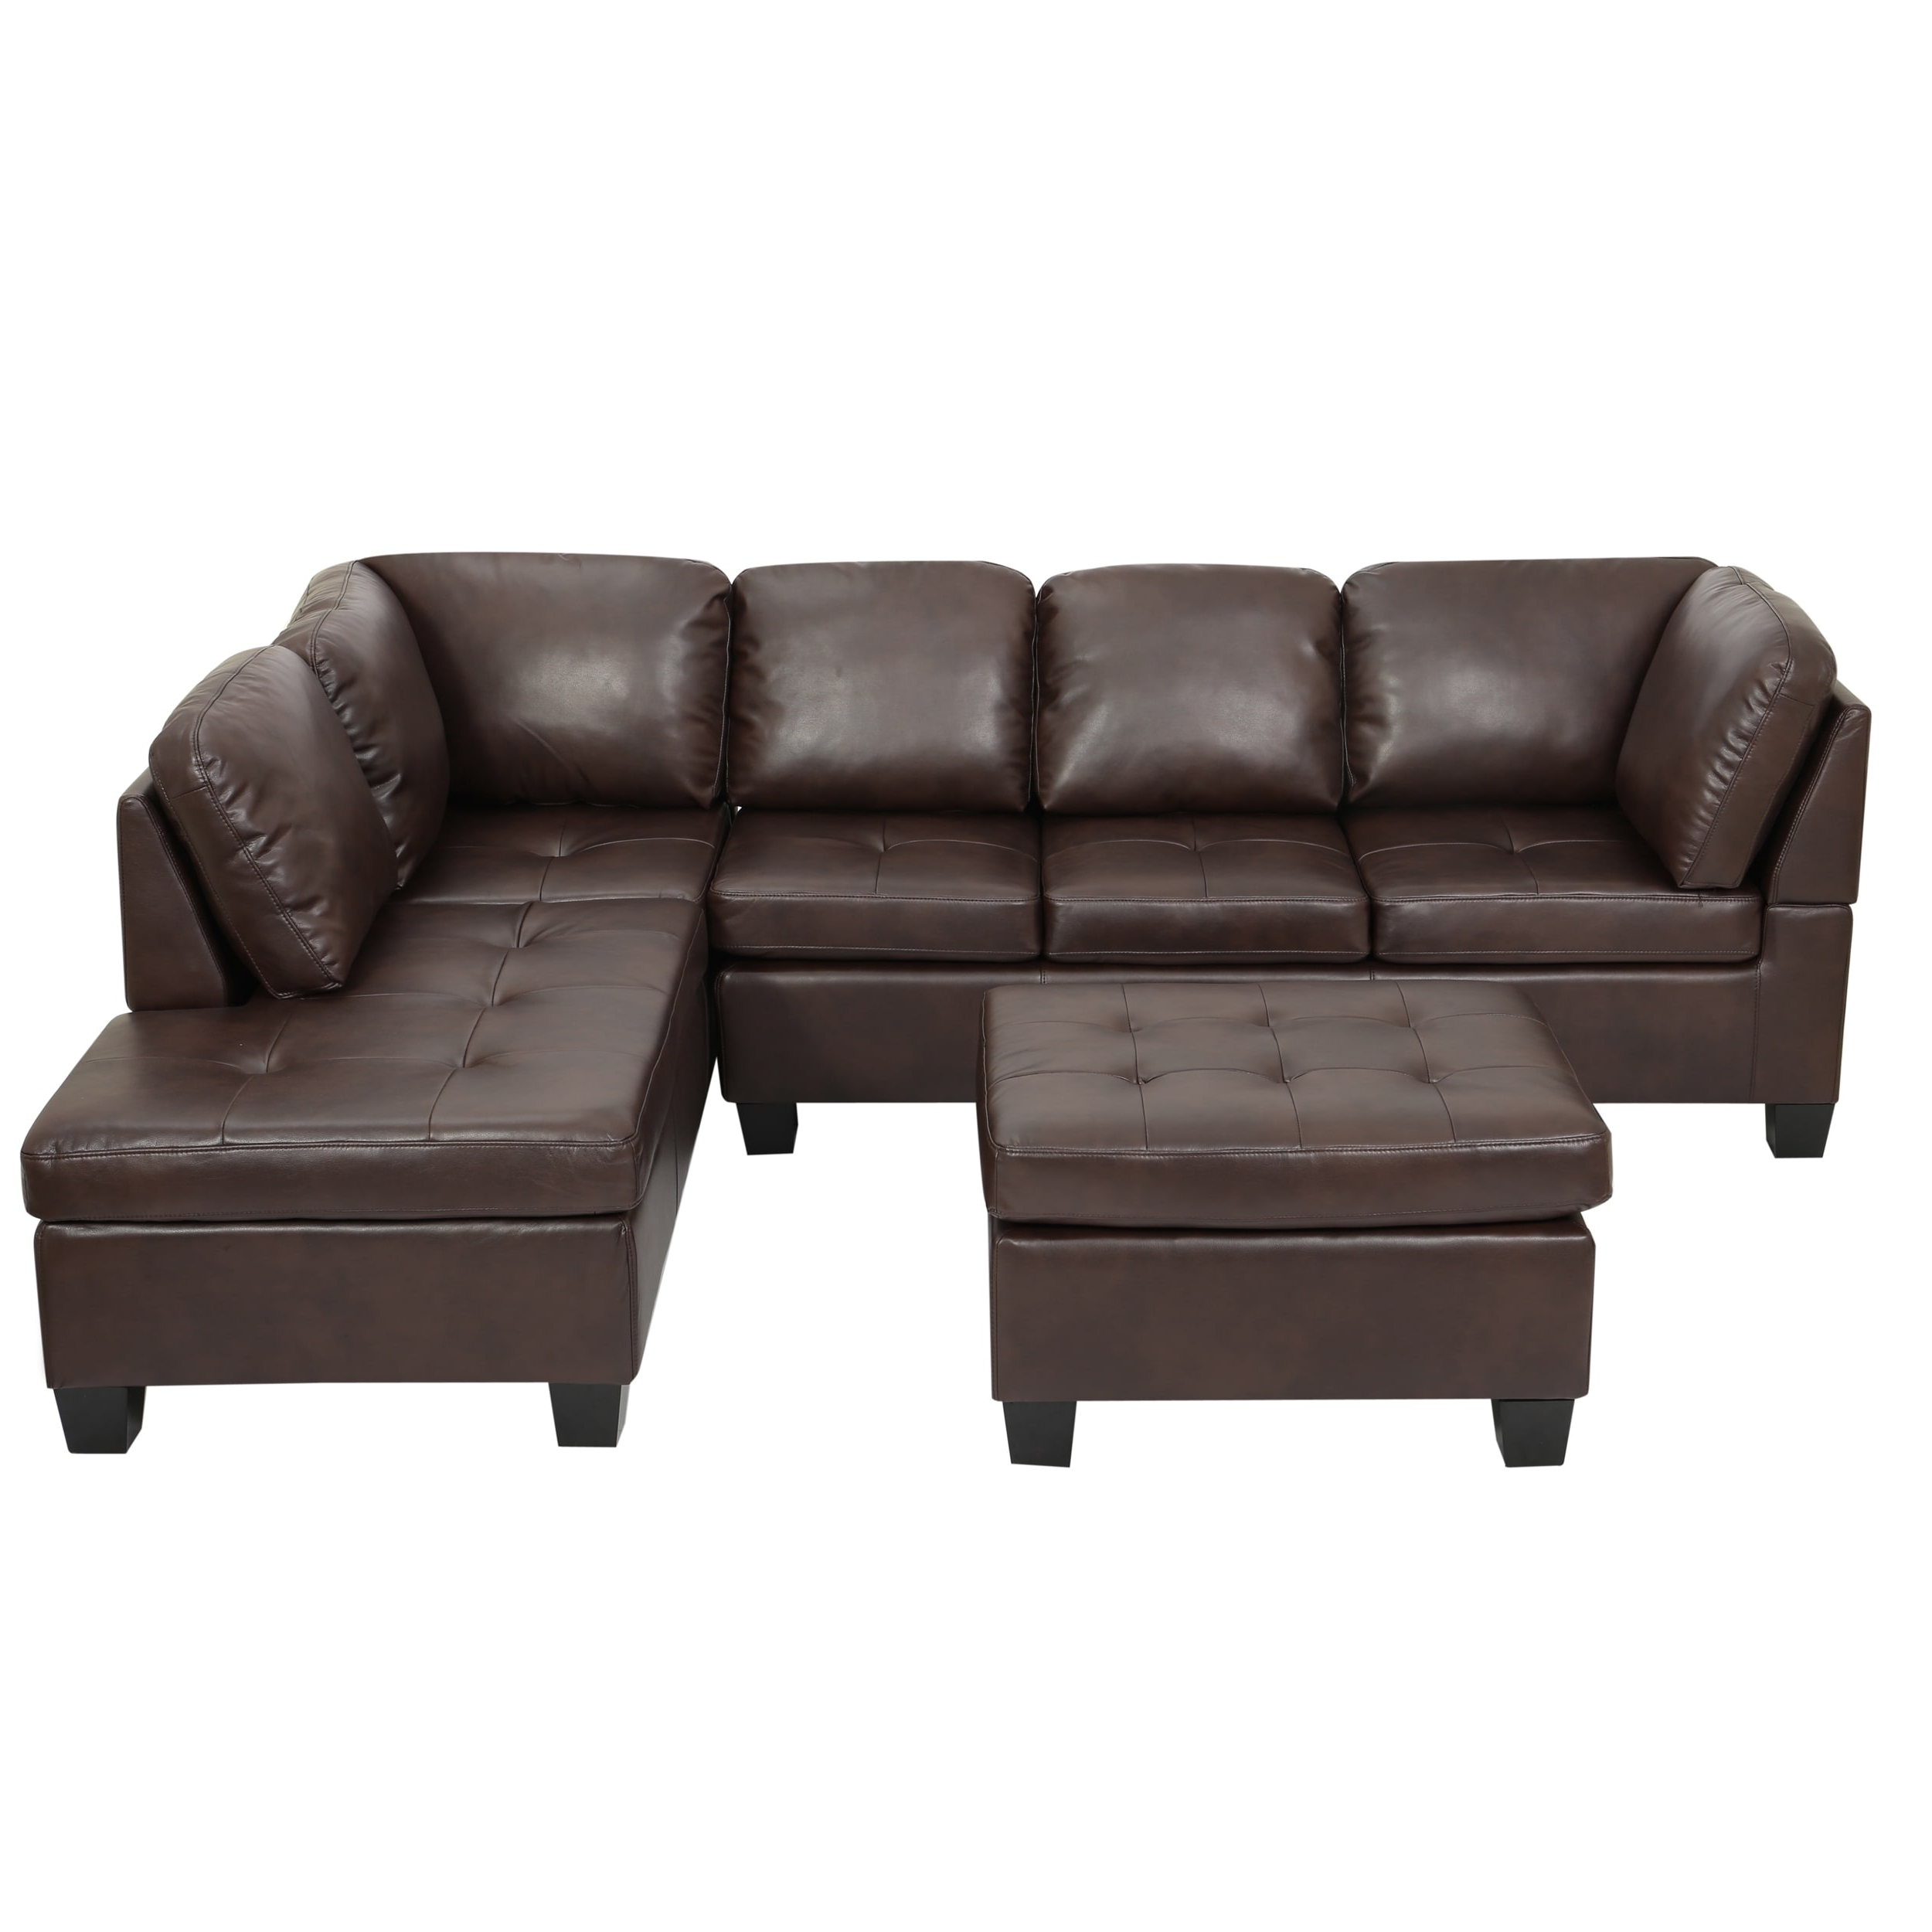 Canterbury 3 Piece Pu Leather Sectional Sofa Setchristopher Pertaining To Most Popular Canterbury Leather Sofas (View 4 of 15)